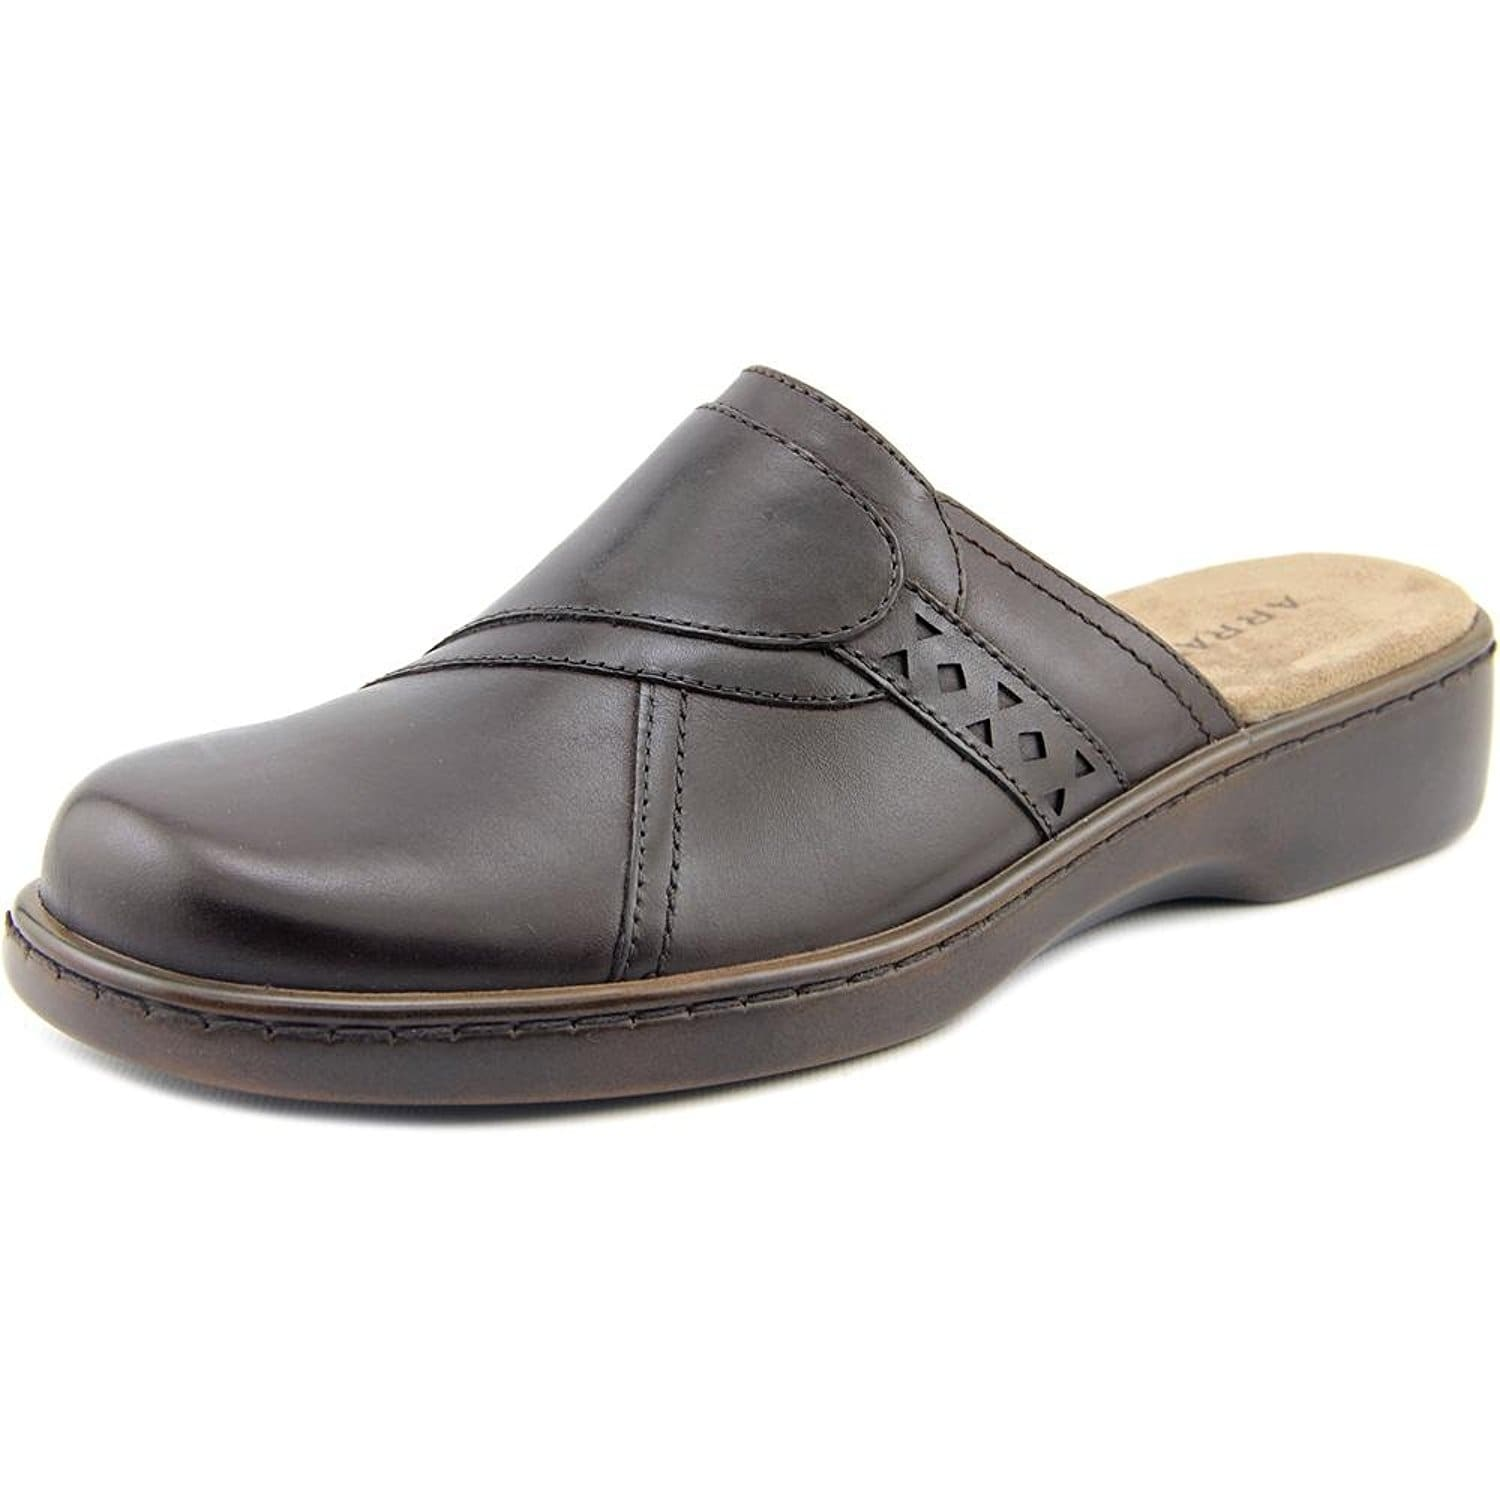 Closed Leather Toe Womens Mules Array Chorus qw10UnaP